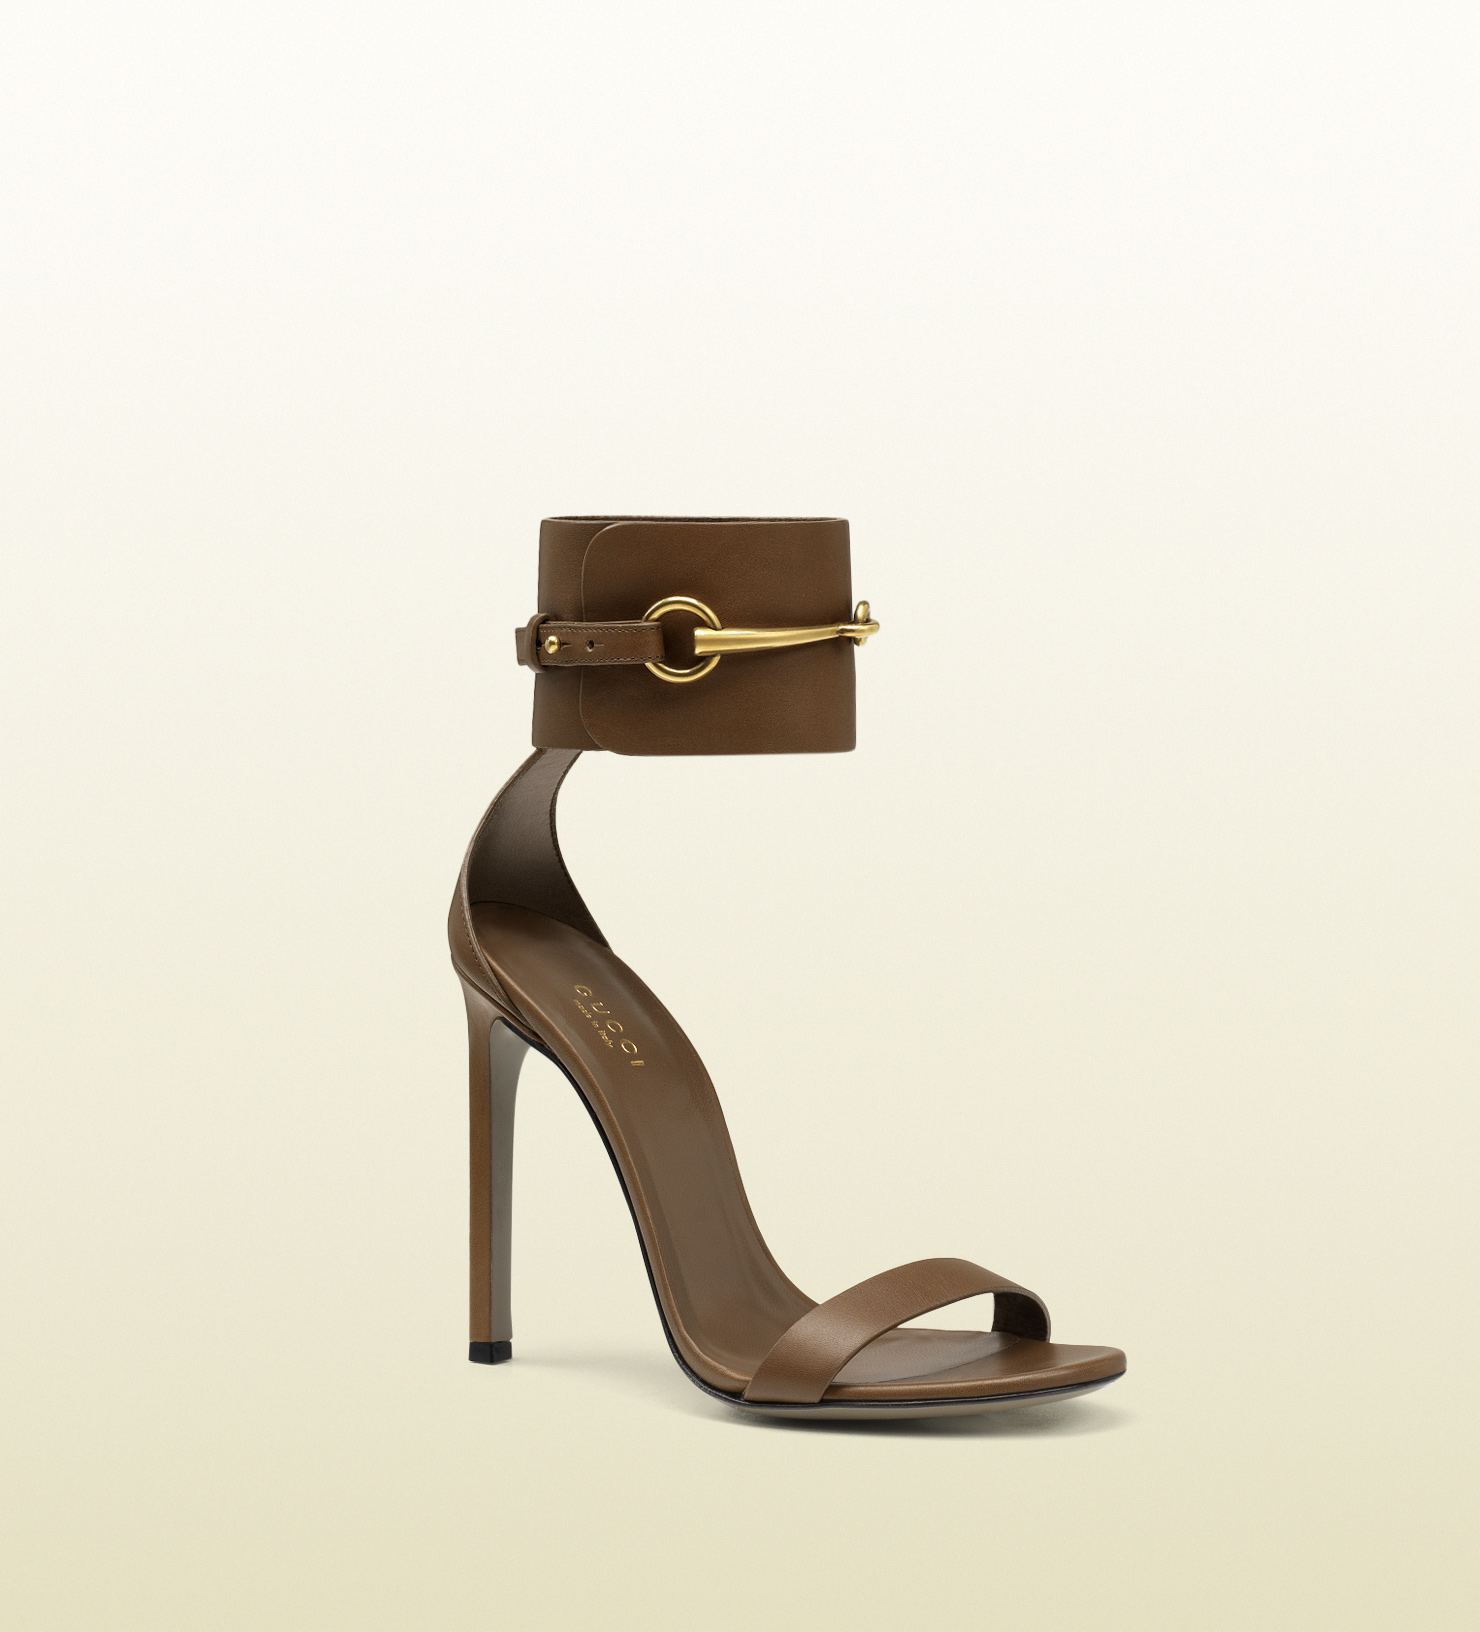 Gucci - ankle-strap leather sandal 319587A3N002527